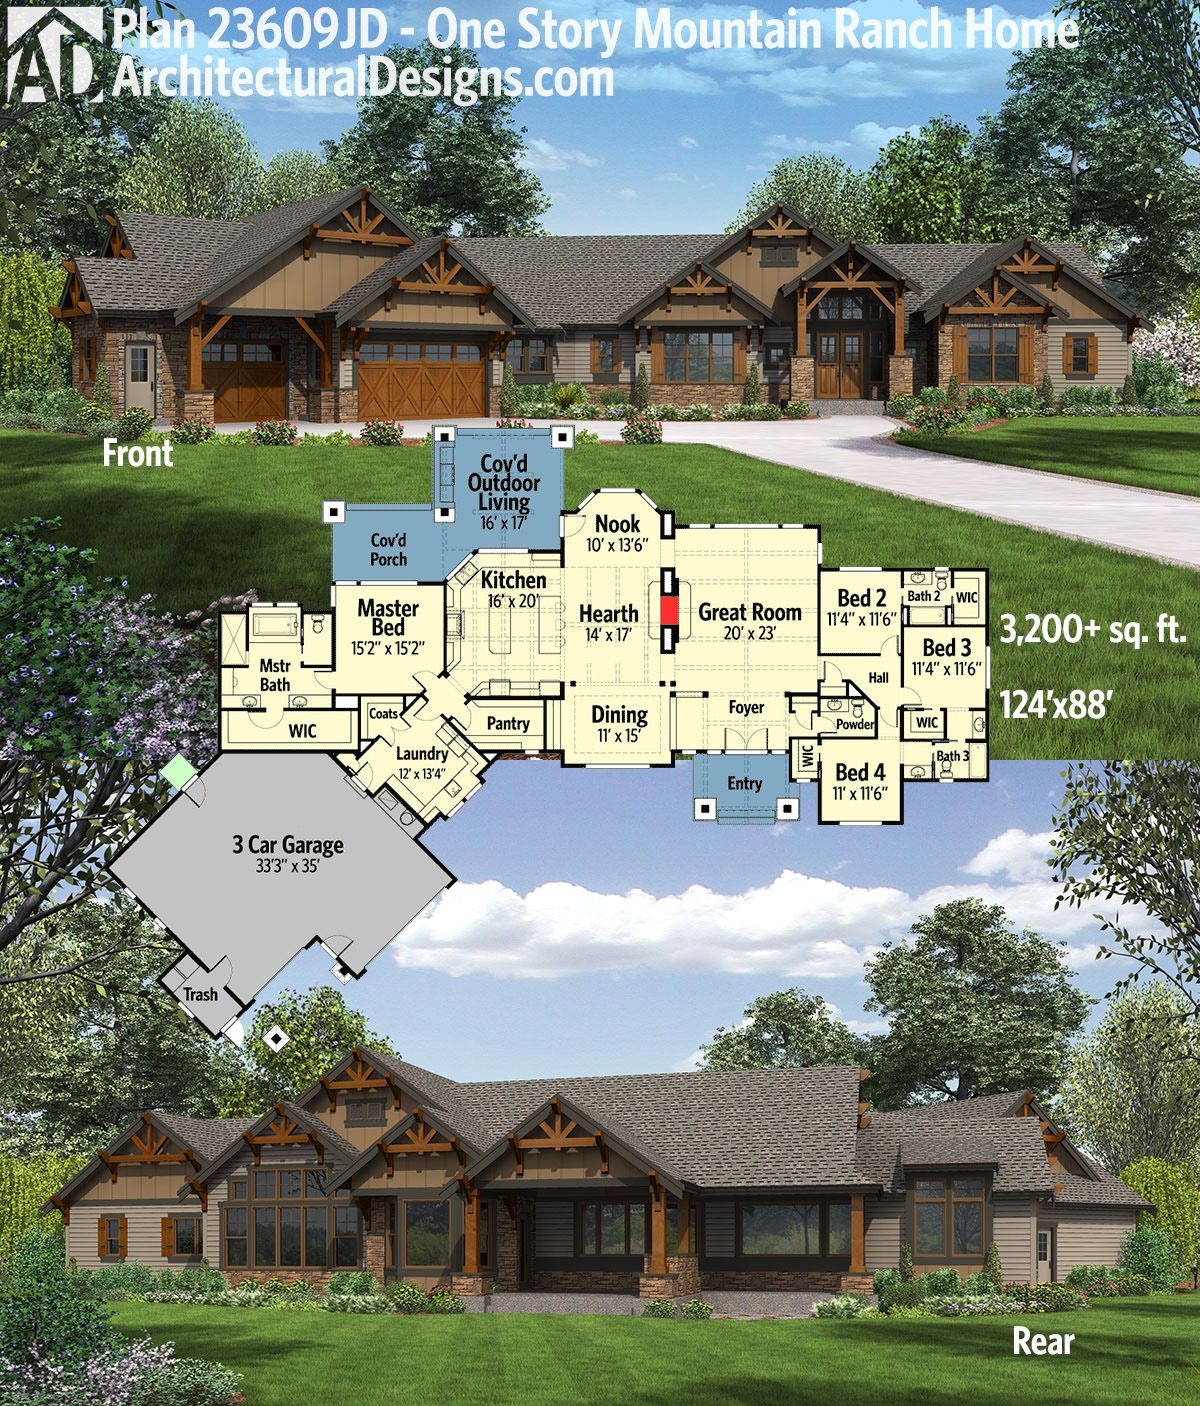 Architectural Designs One Story Mountain Ranch Home Plan 23609JD Gives You Over 3200 Square Feet Of Living And Great Covered Outdoor Spaces In Back